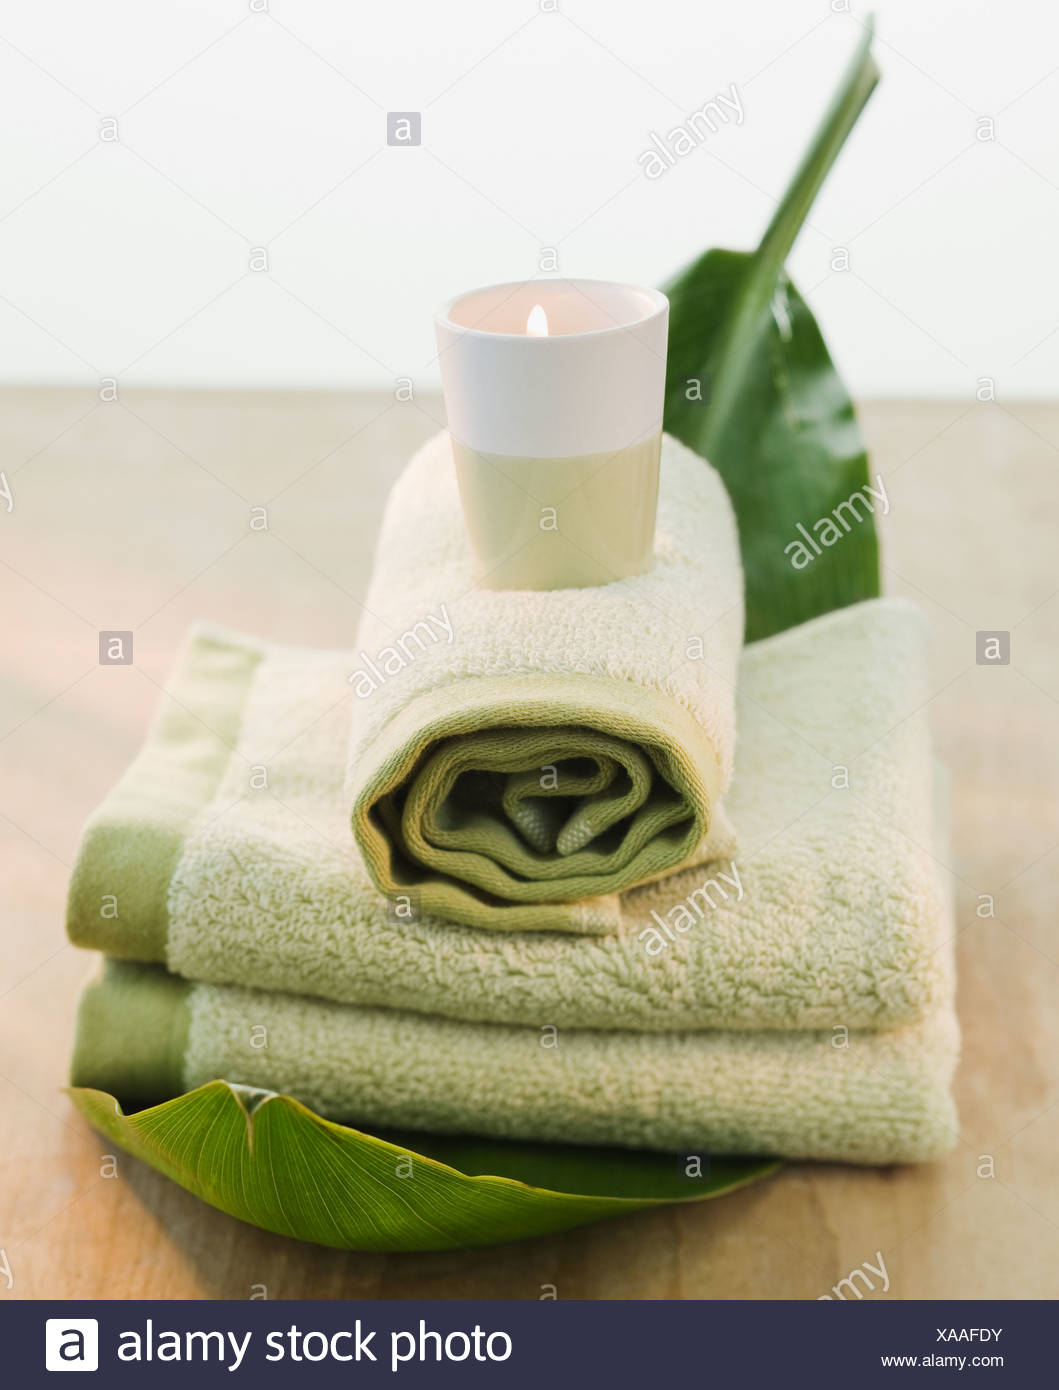 Candle on rolled towels - Stock Image